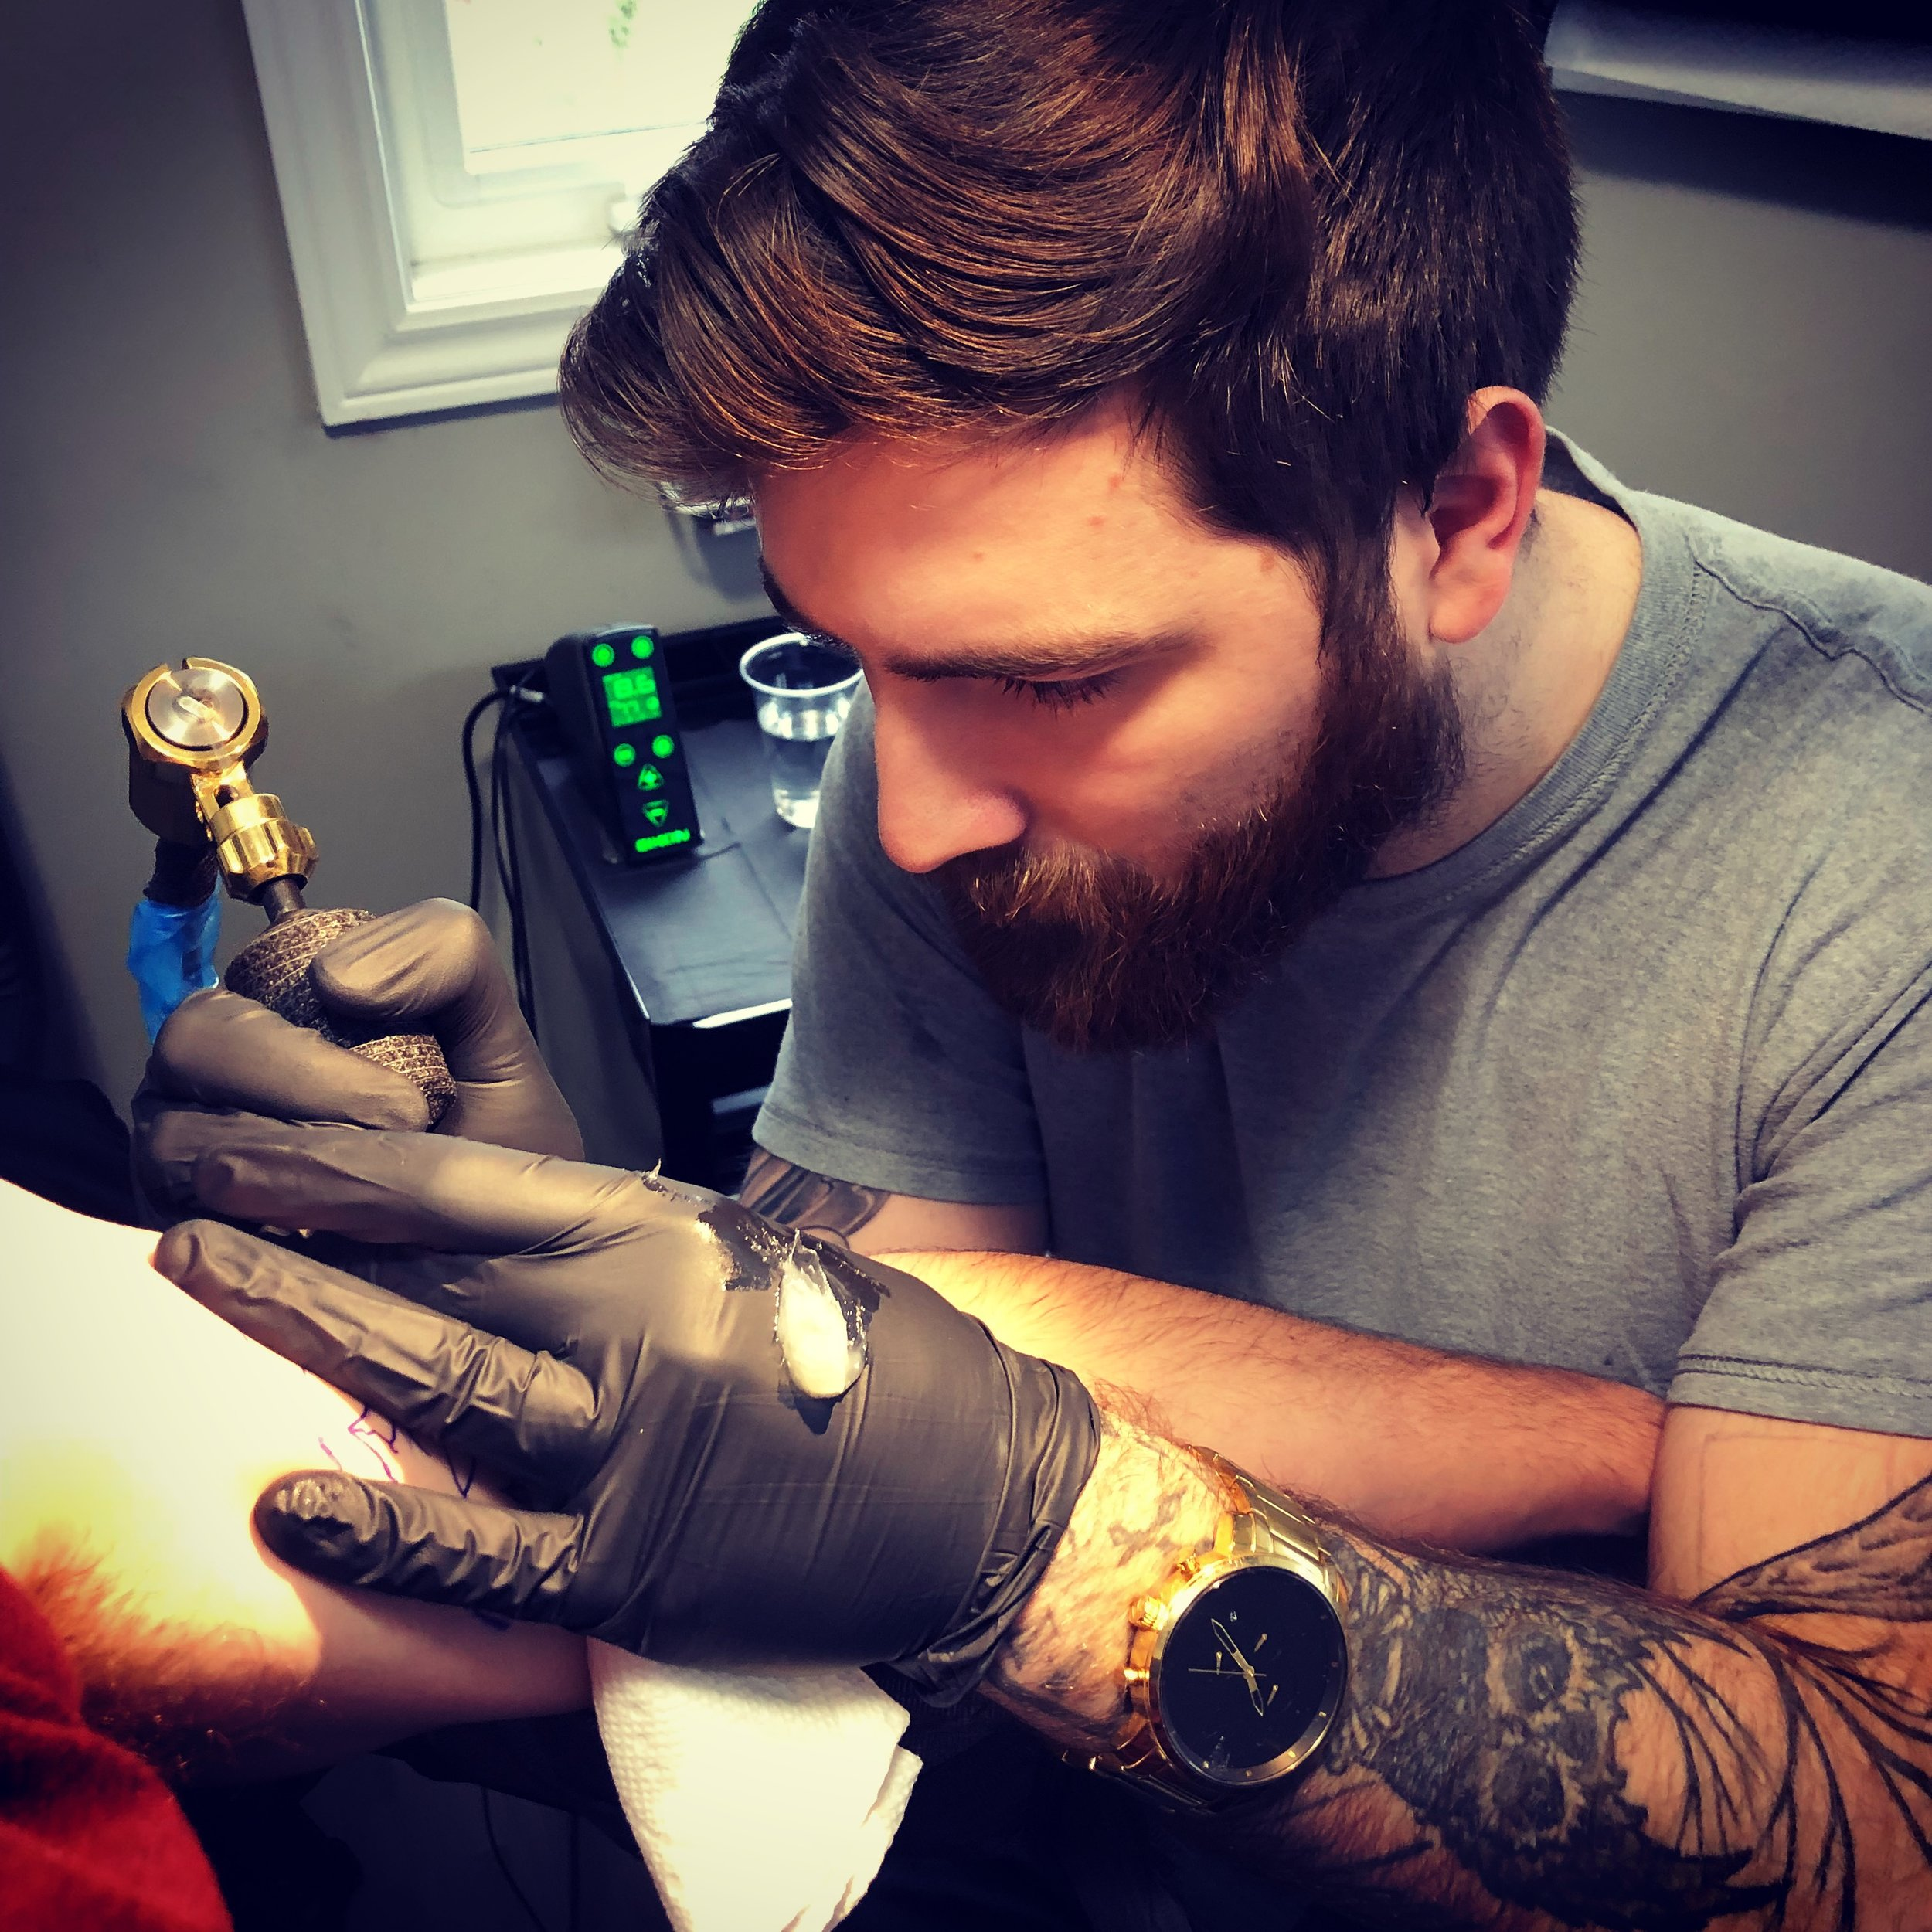 Anthony Charbonneau - Anthony is a tattooer and owner of ASC INK from Montreal Canada but is currently tattooing in the Ottawa west area. He prefers to tattoo big realistic animals and portraits but is well versed in all styles. Click on his picture to check out his work!